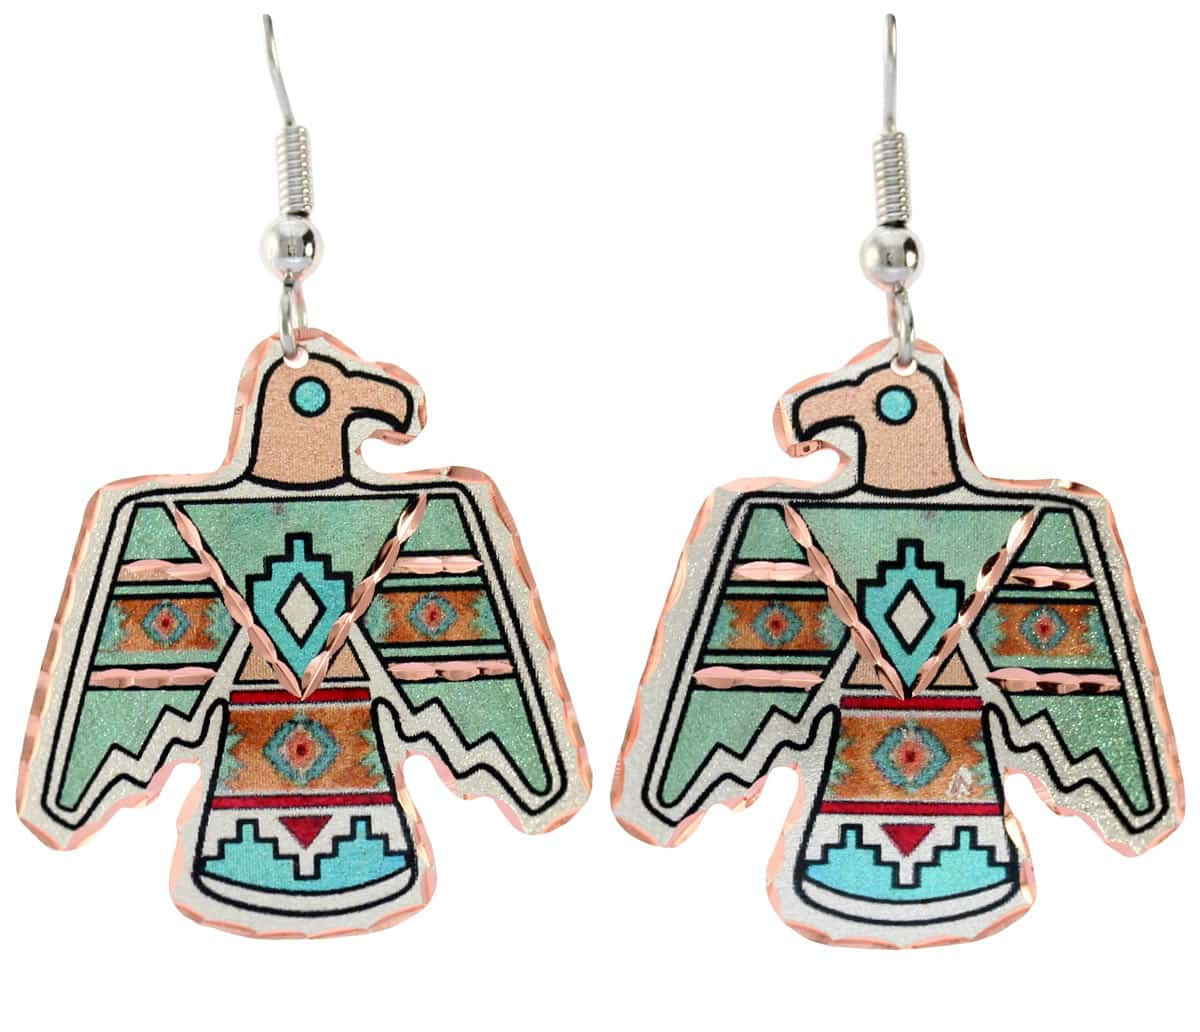 Colorful handmade Thunderbird earrings fashionably elegant and sophisticated